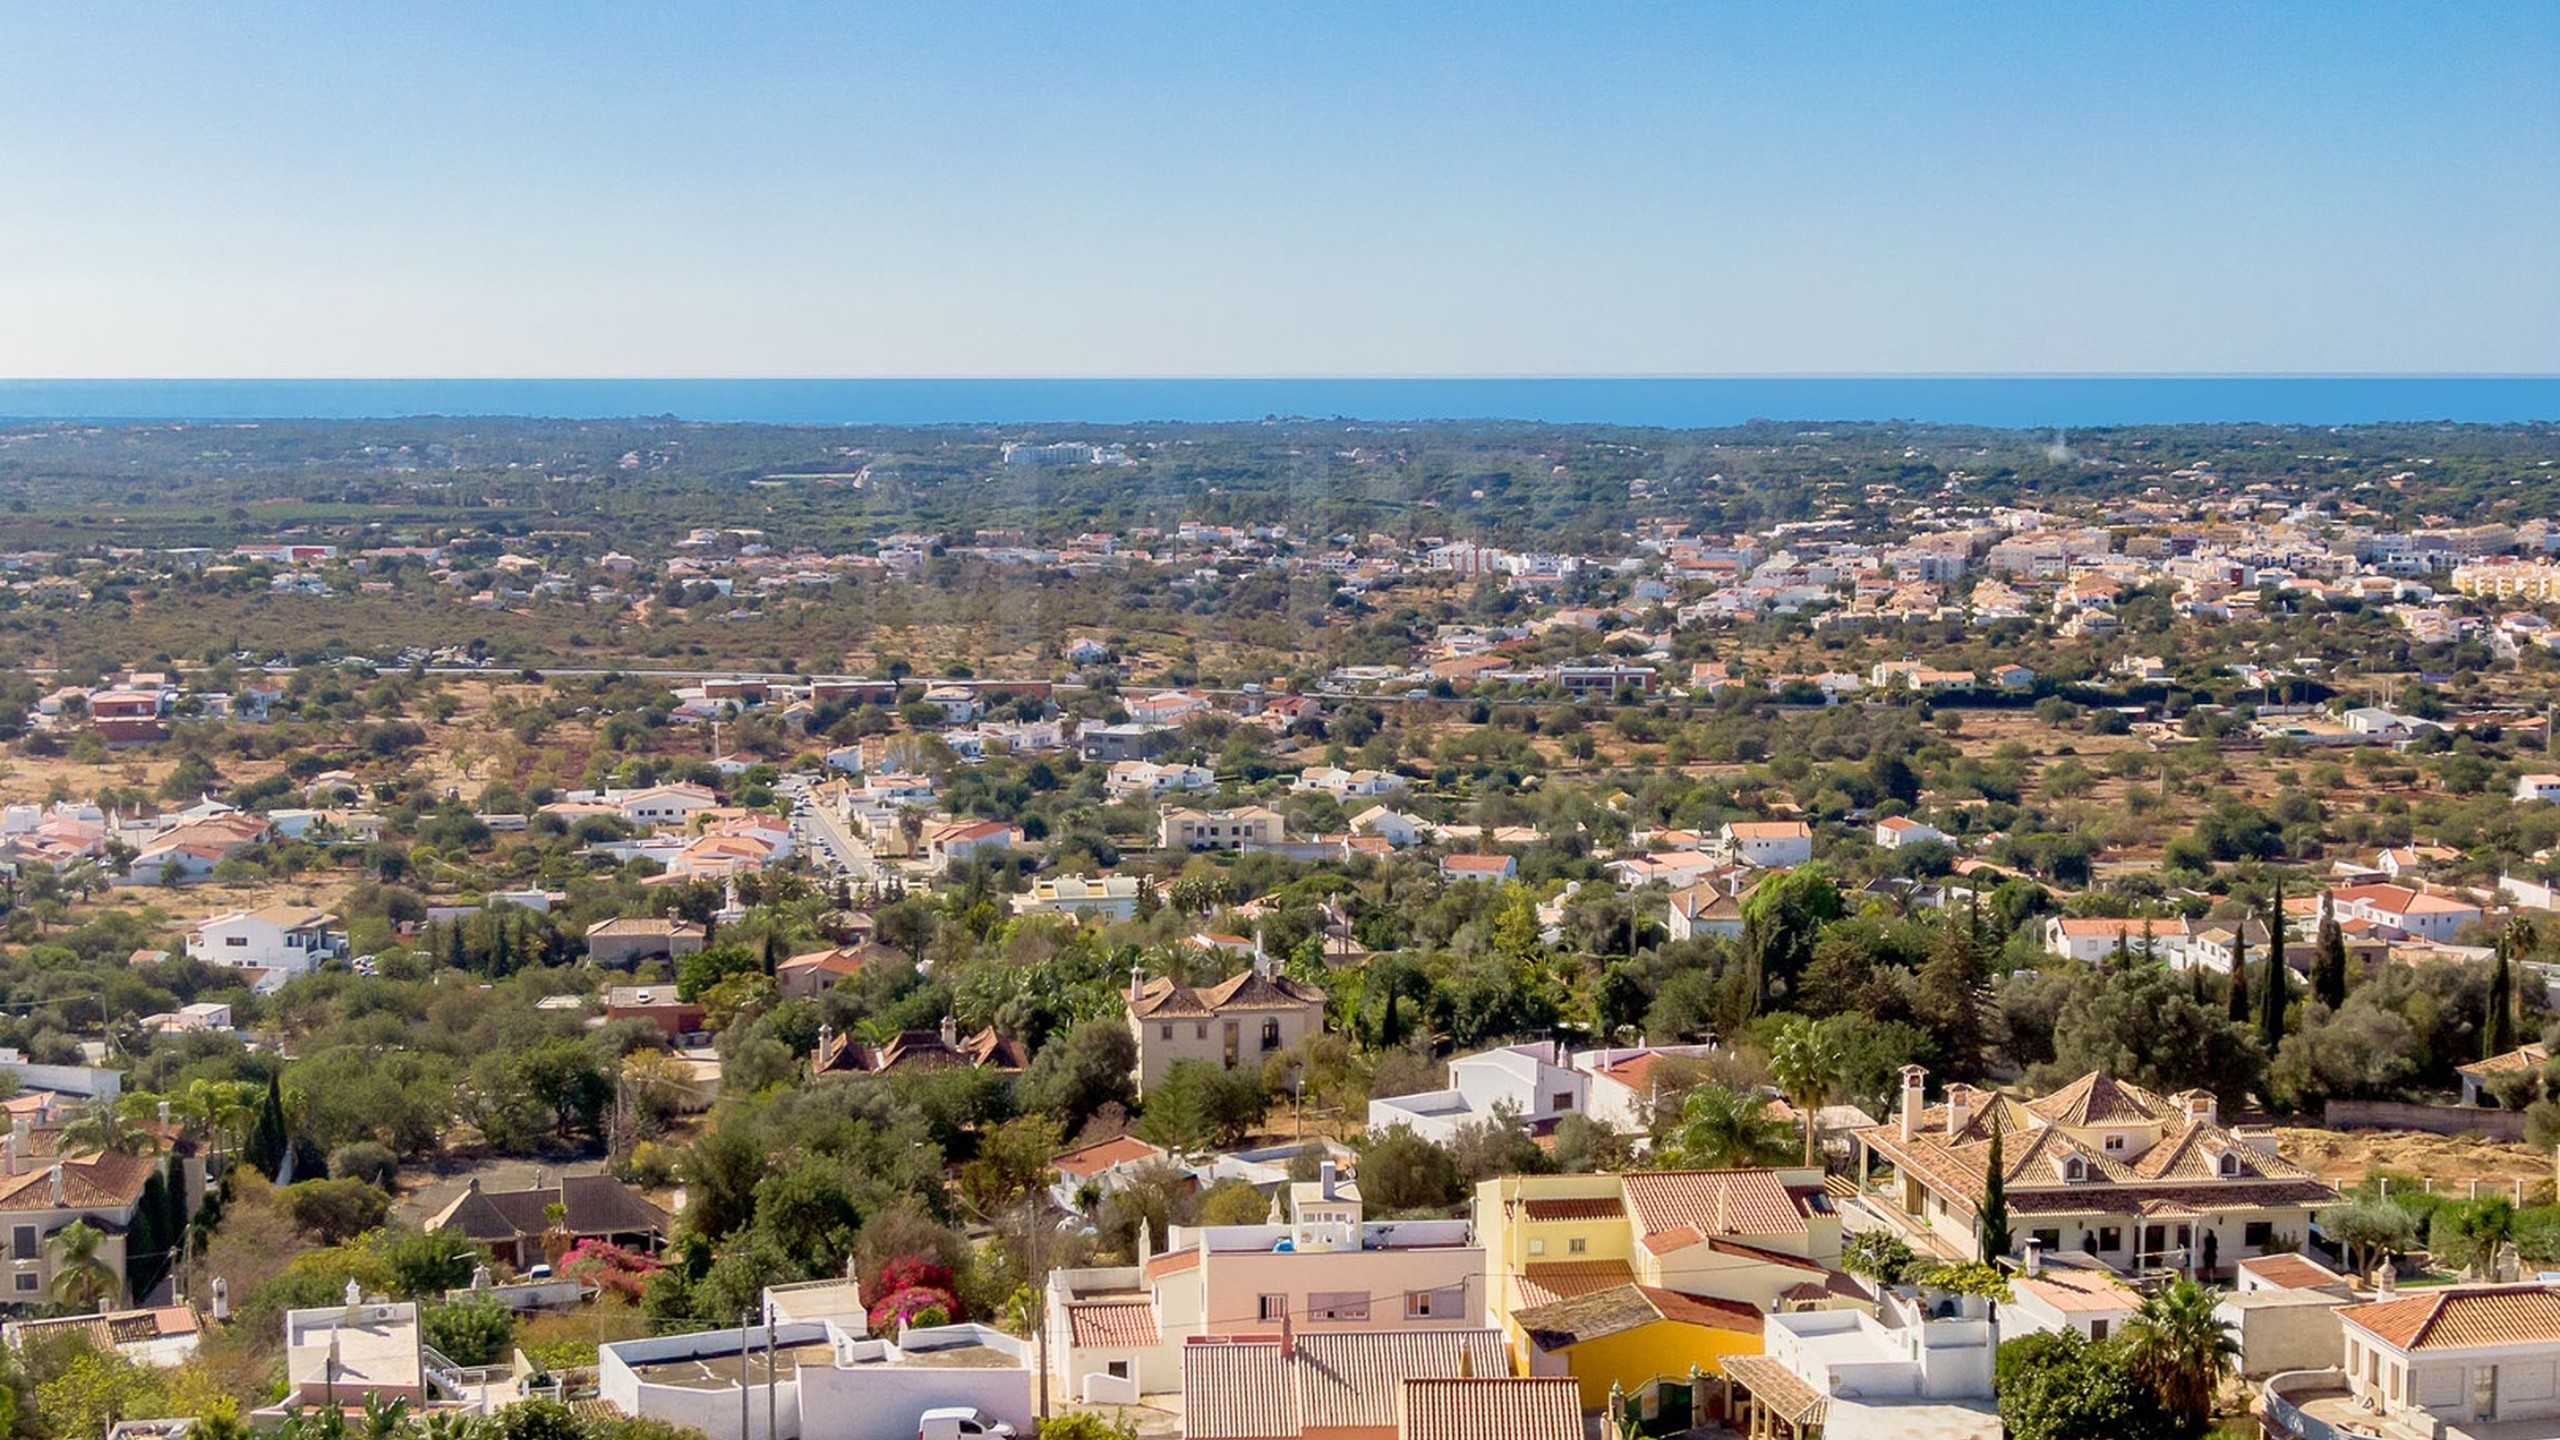 Plot for sale in Algarve with approved construction plan